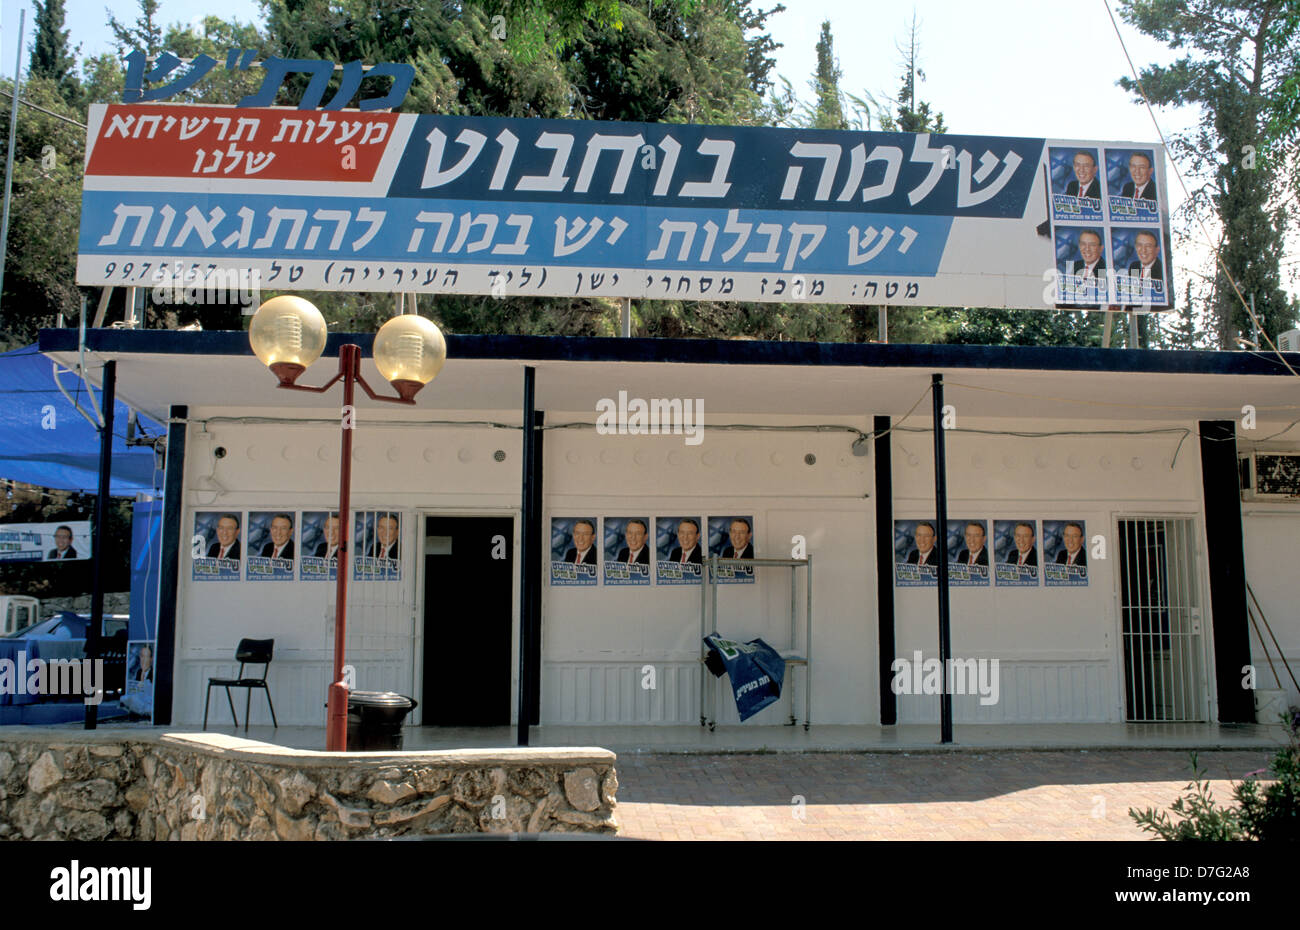 2003 municality elections in maalot tarshiha advertising for mayor shlomo buchbut - Stock Image